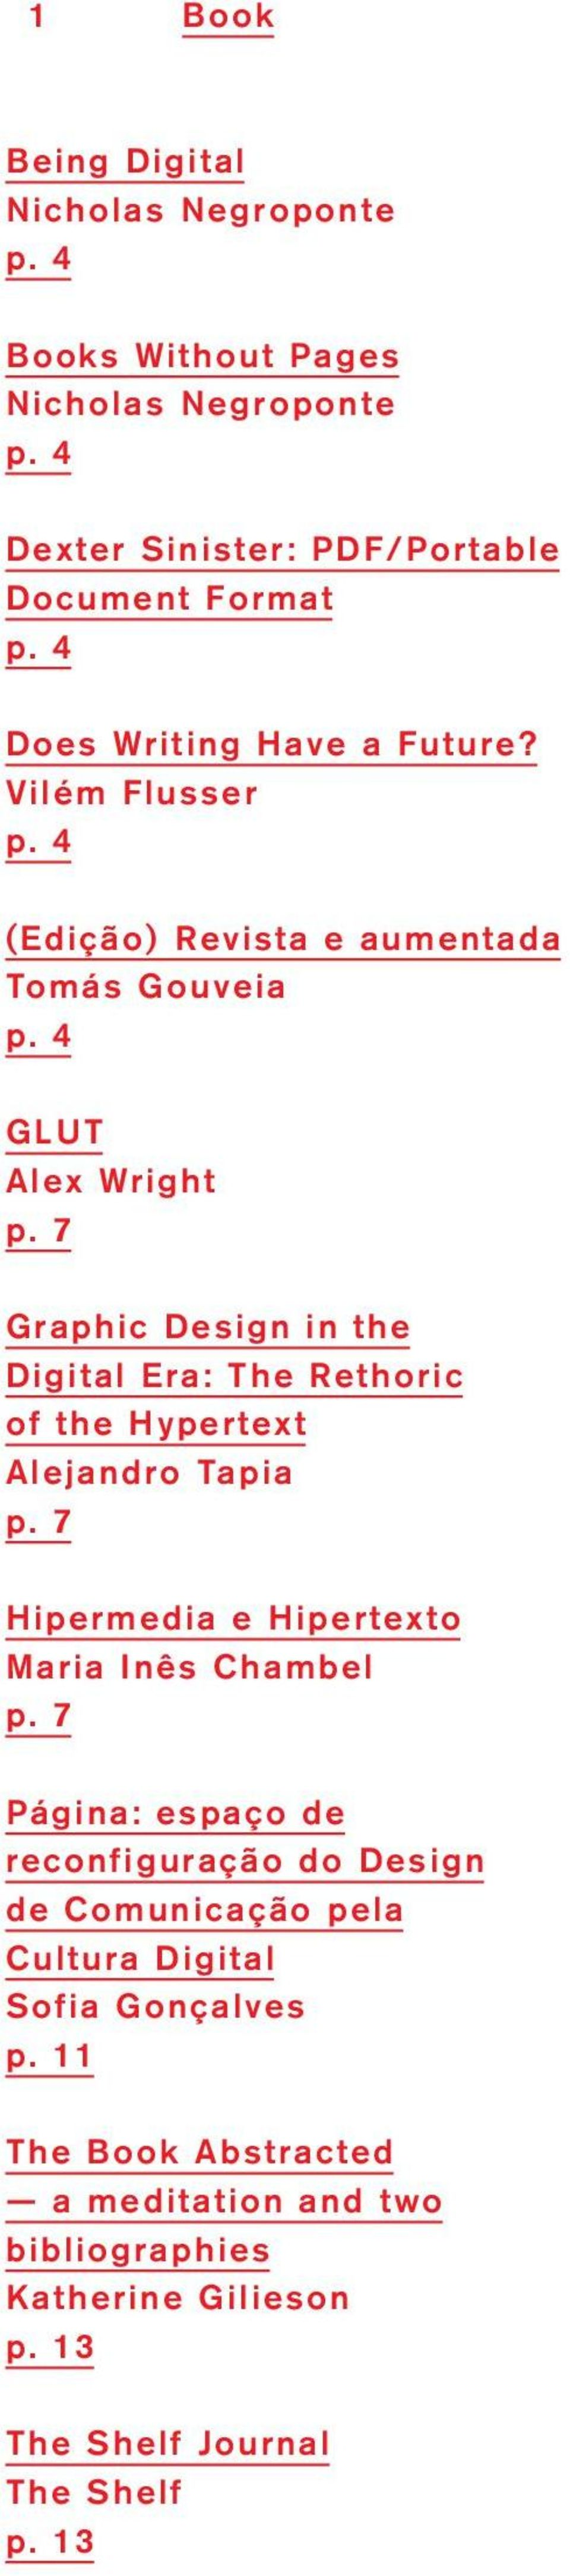 7 Graphic Design in the Digital Era: The Rethoric of the Hypertext Alejandro Tapia p. 7 Hipermedia e Hipertexto Maria Inês Chambel p.